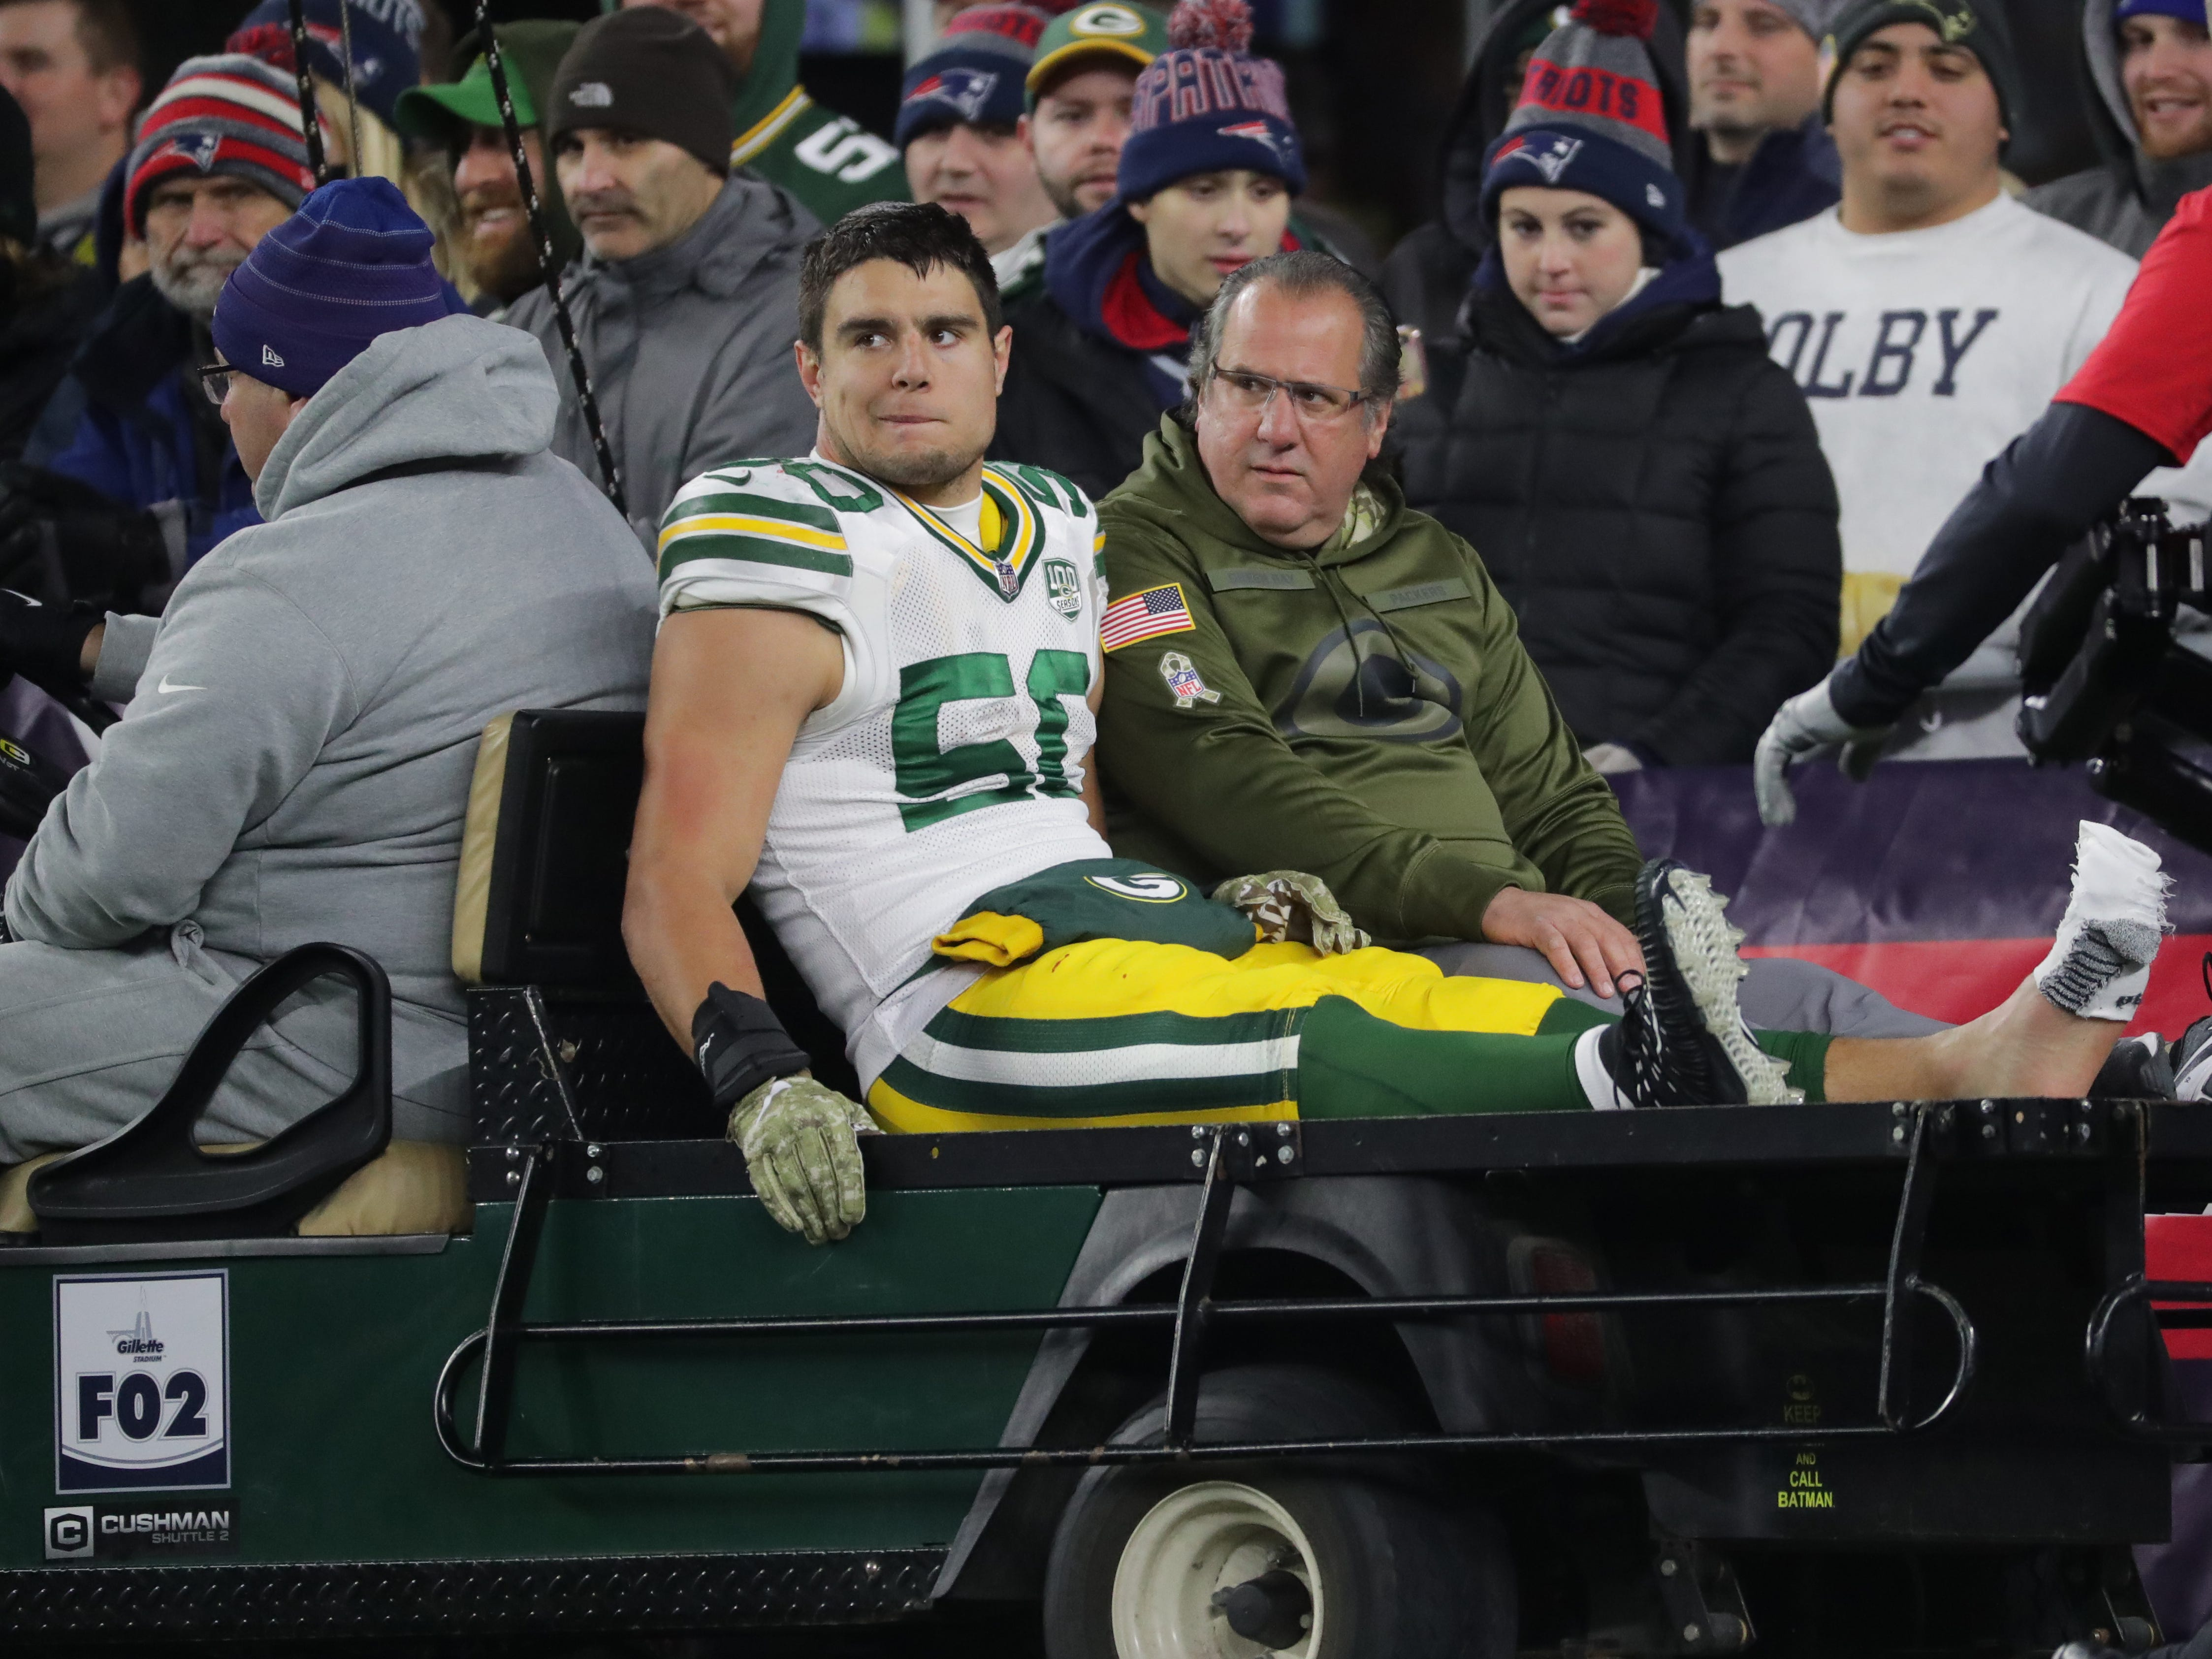 Green Bay Packers inside linebacker Blake Martinez (50) is carted from the field after being injured during the third  quarter of their game Sunday, November 4, 2018 at Gillette Stadium in Foxborough, Mass. The New England Patriots beat the Green Bay Packers 31-17.